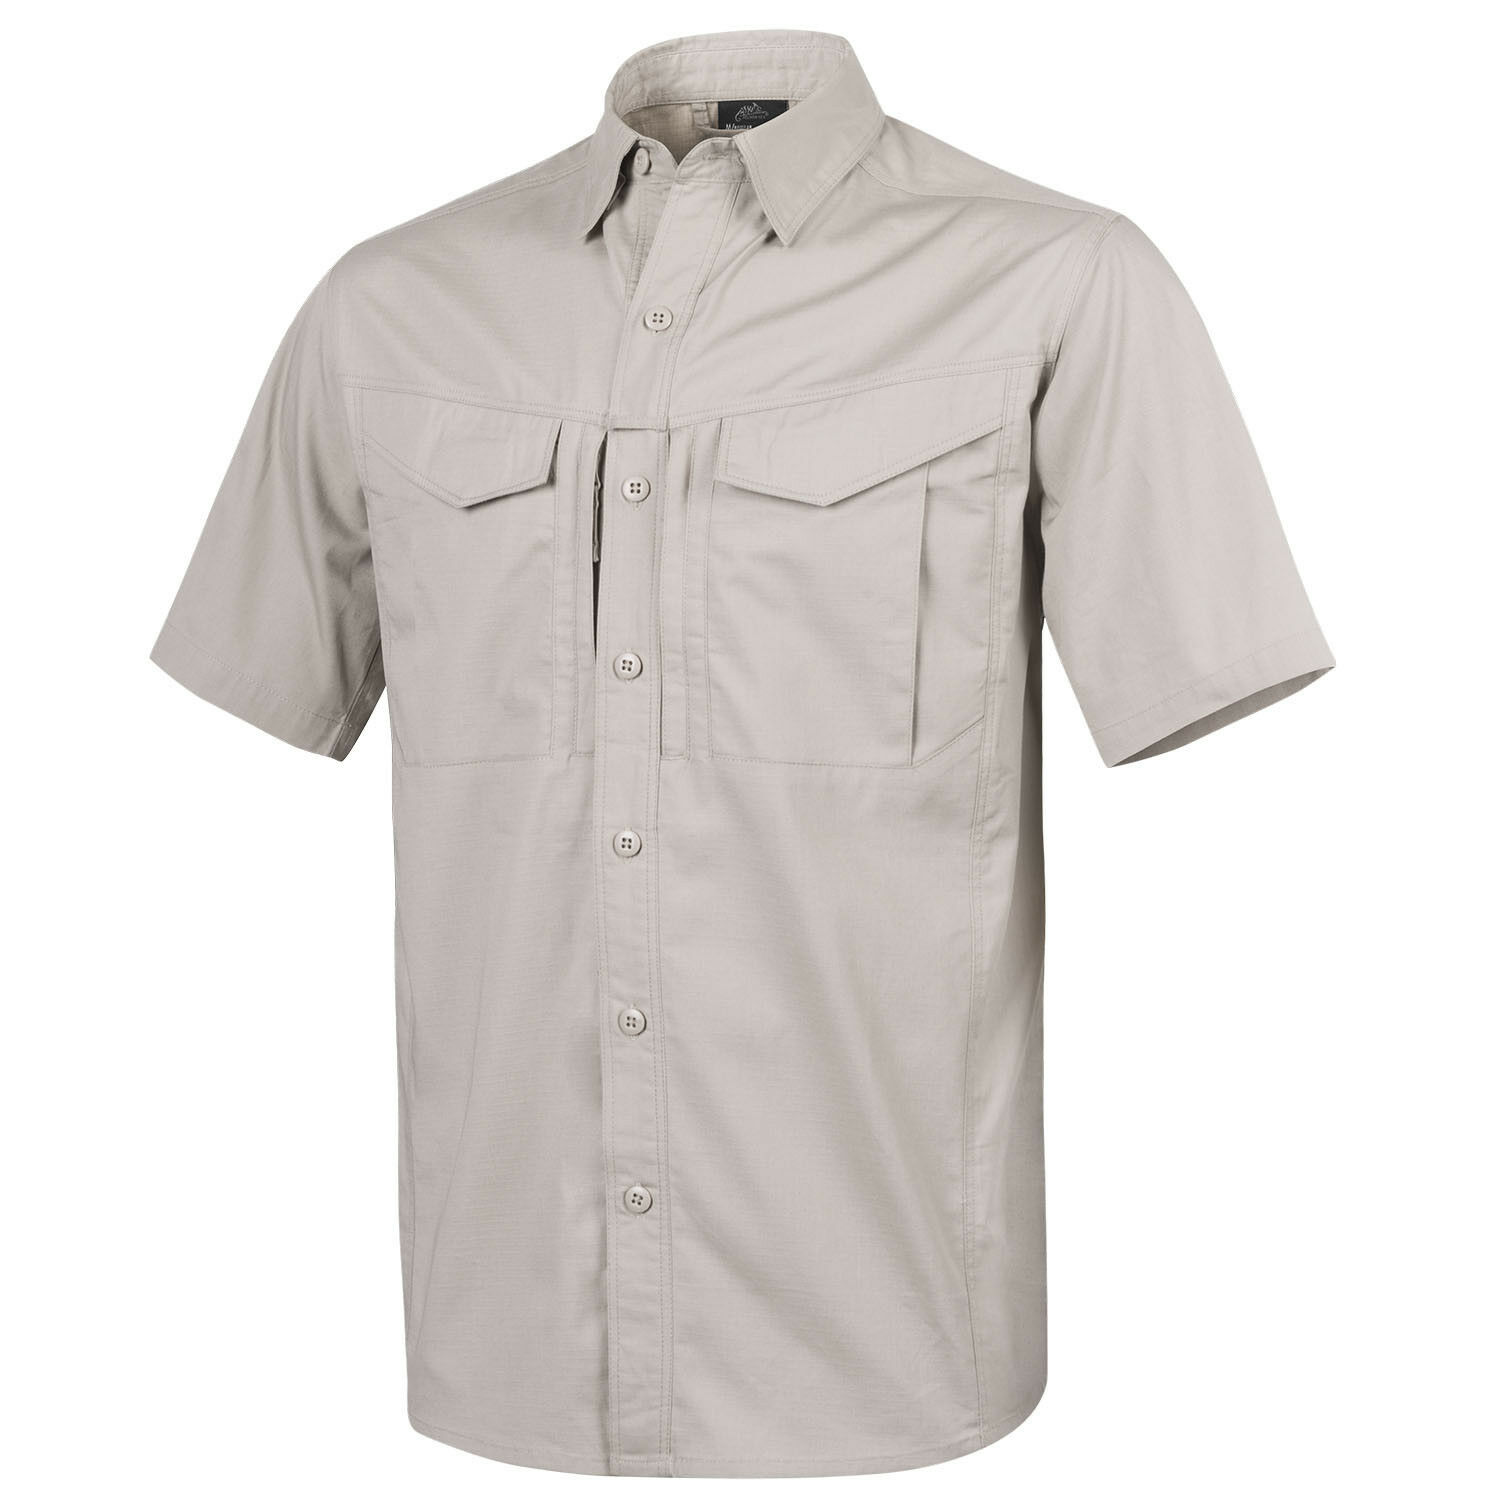 Helikon Tex DEFENDER Mk2 Shirt short XXXL sleeve Outdoor Freizeit Hemd khaki XXXL short 3XL 6978a7